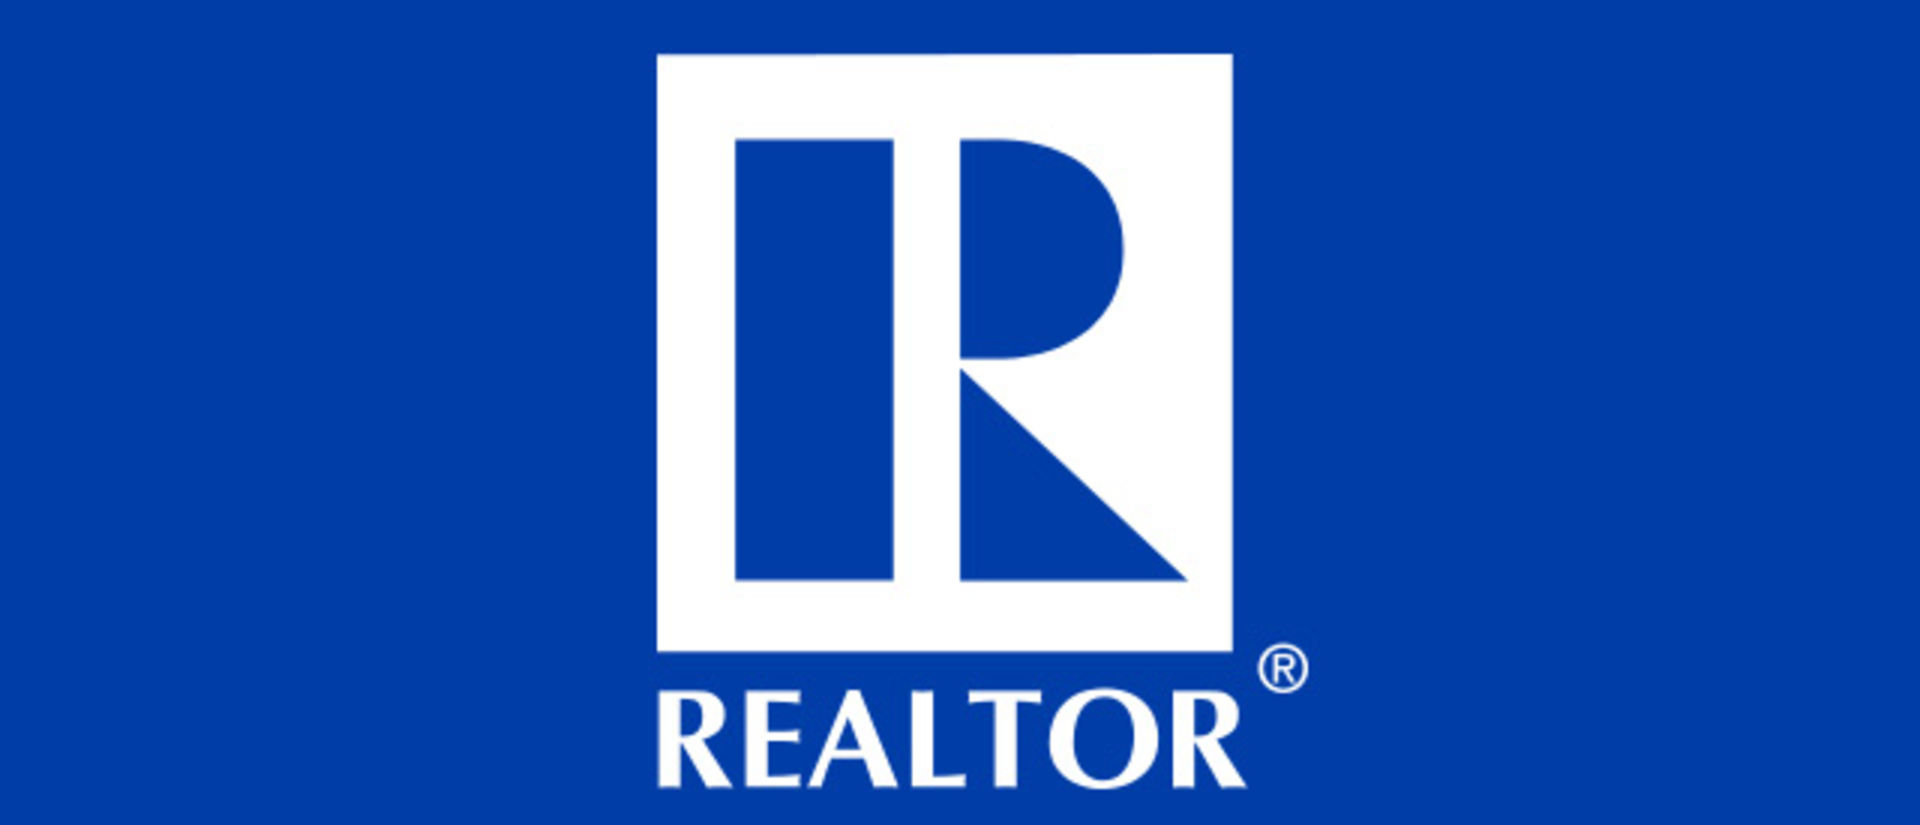 Considerations When Choosing a REALTOR®